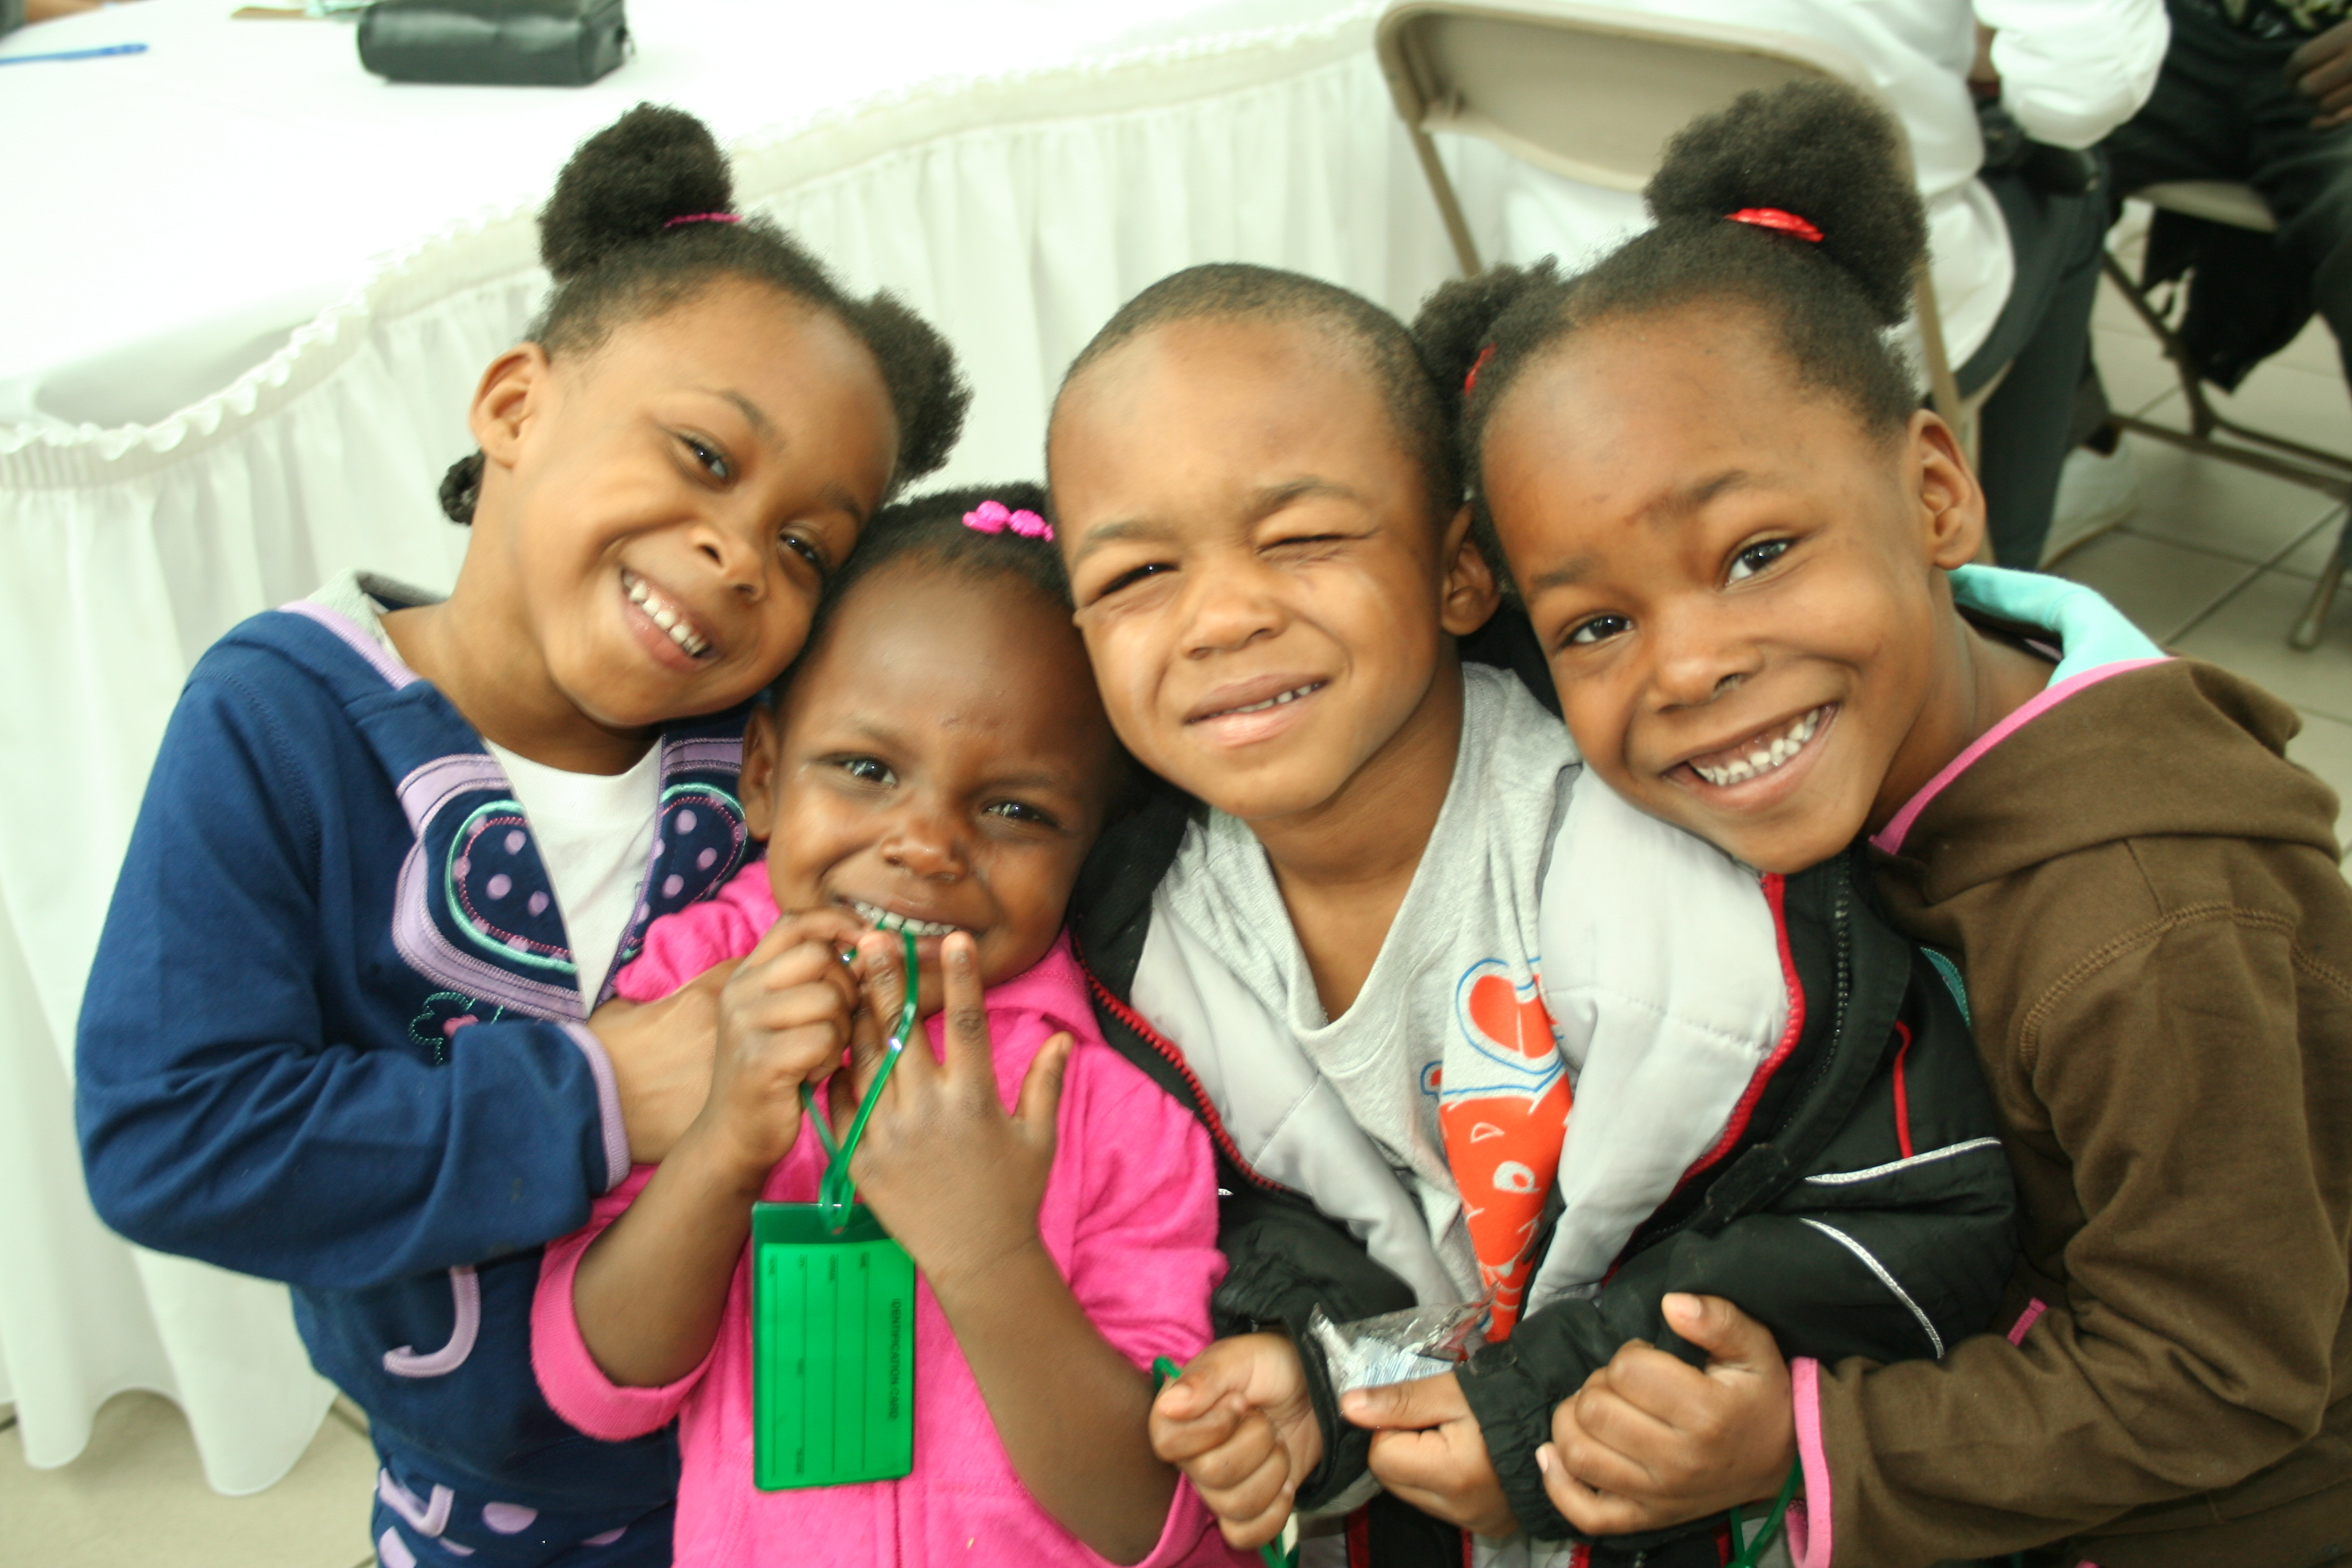 Four young smiling children